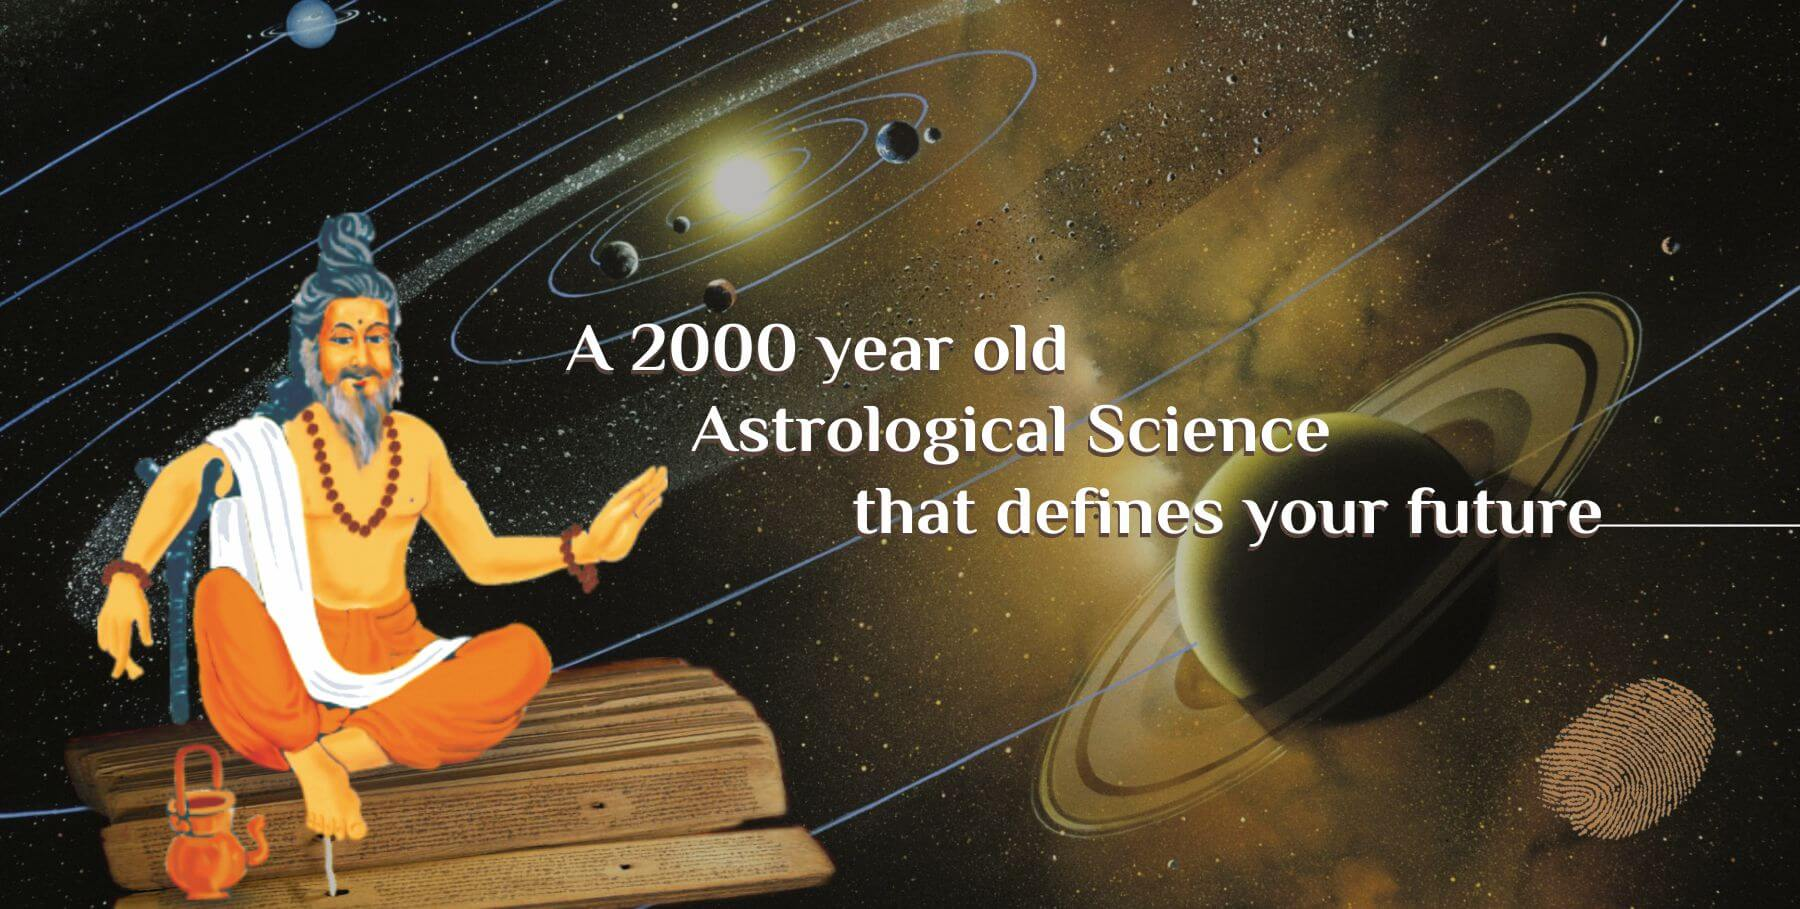 A 2000 year old Astrological Science that defines your future